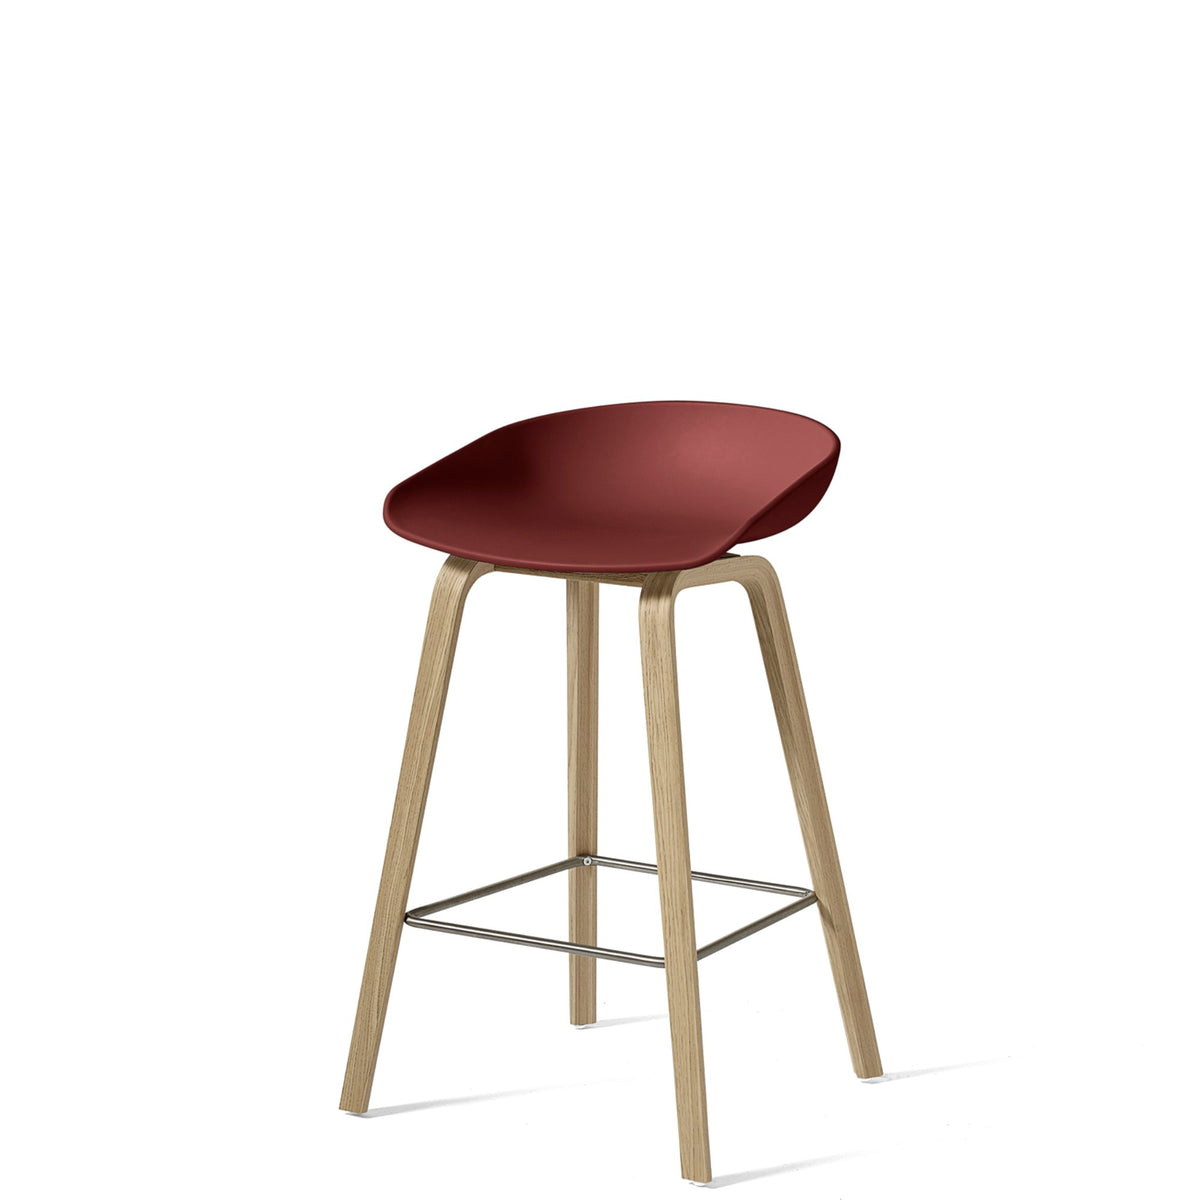 HAY About A Stool AAS32 750mm Brick with Matt Lacquered Oak Base